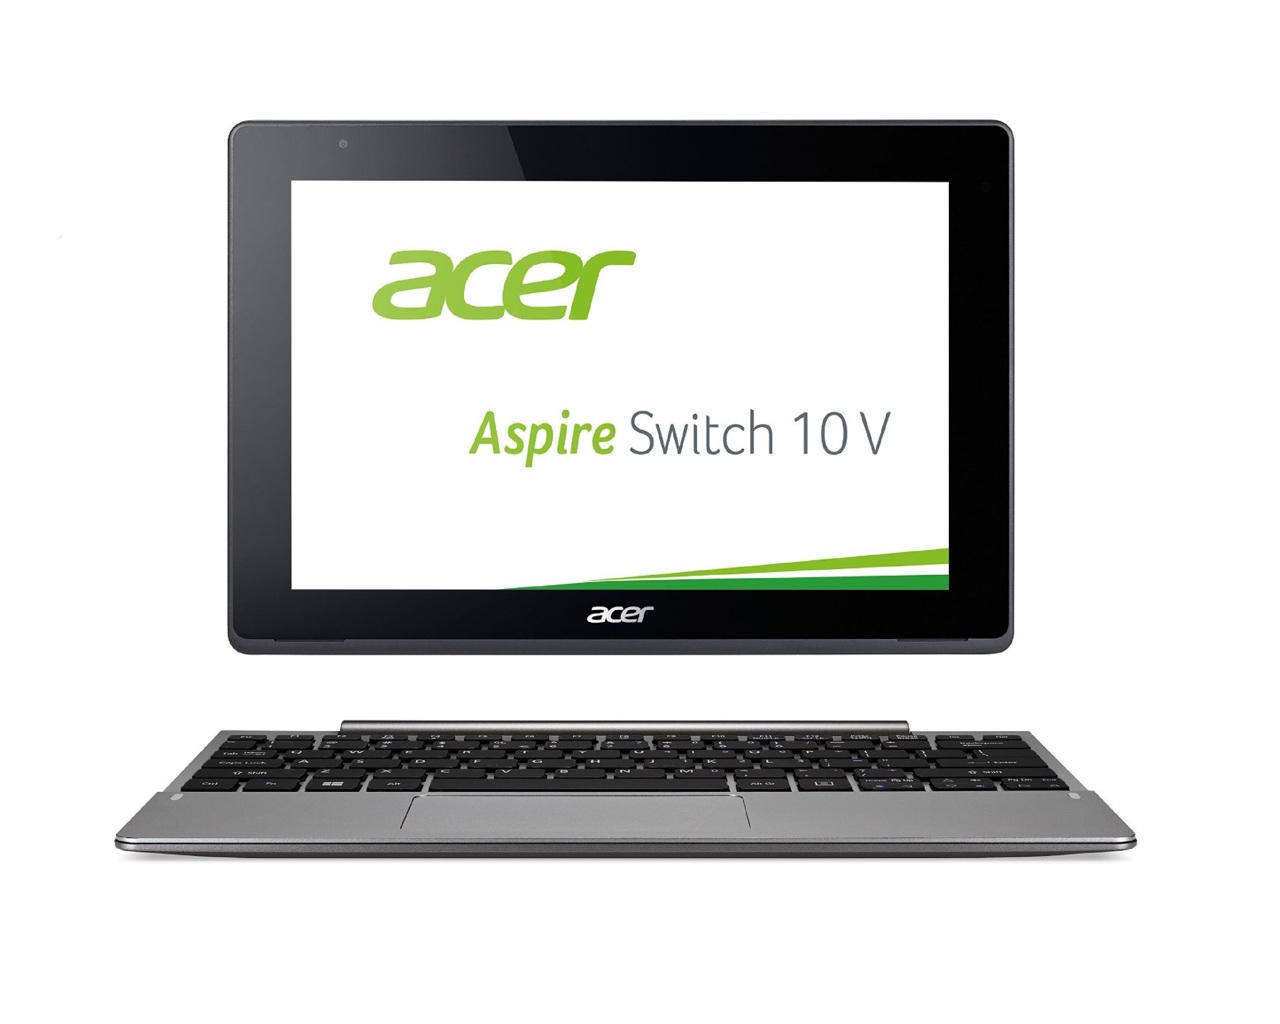 ACER ASPIRE SWITCH 10V SW5-014 LAPTOP DRIVER WINDOWS XP